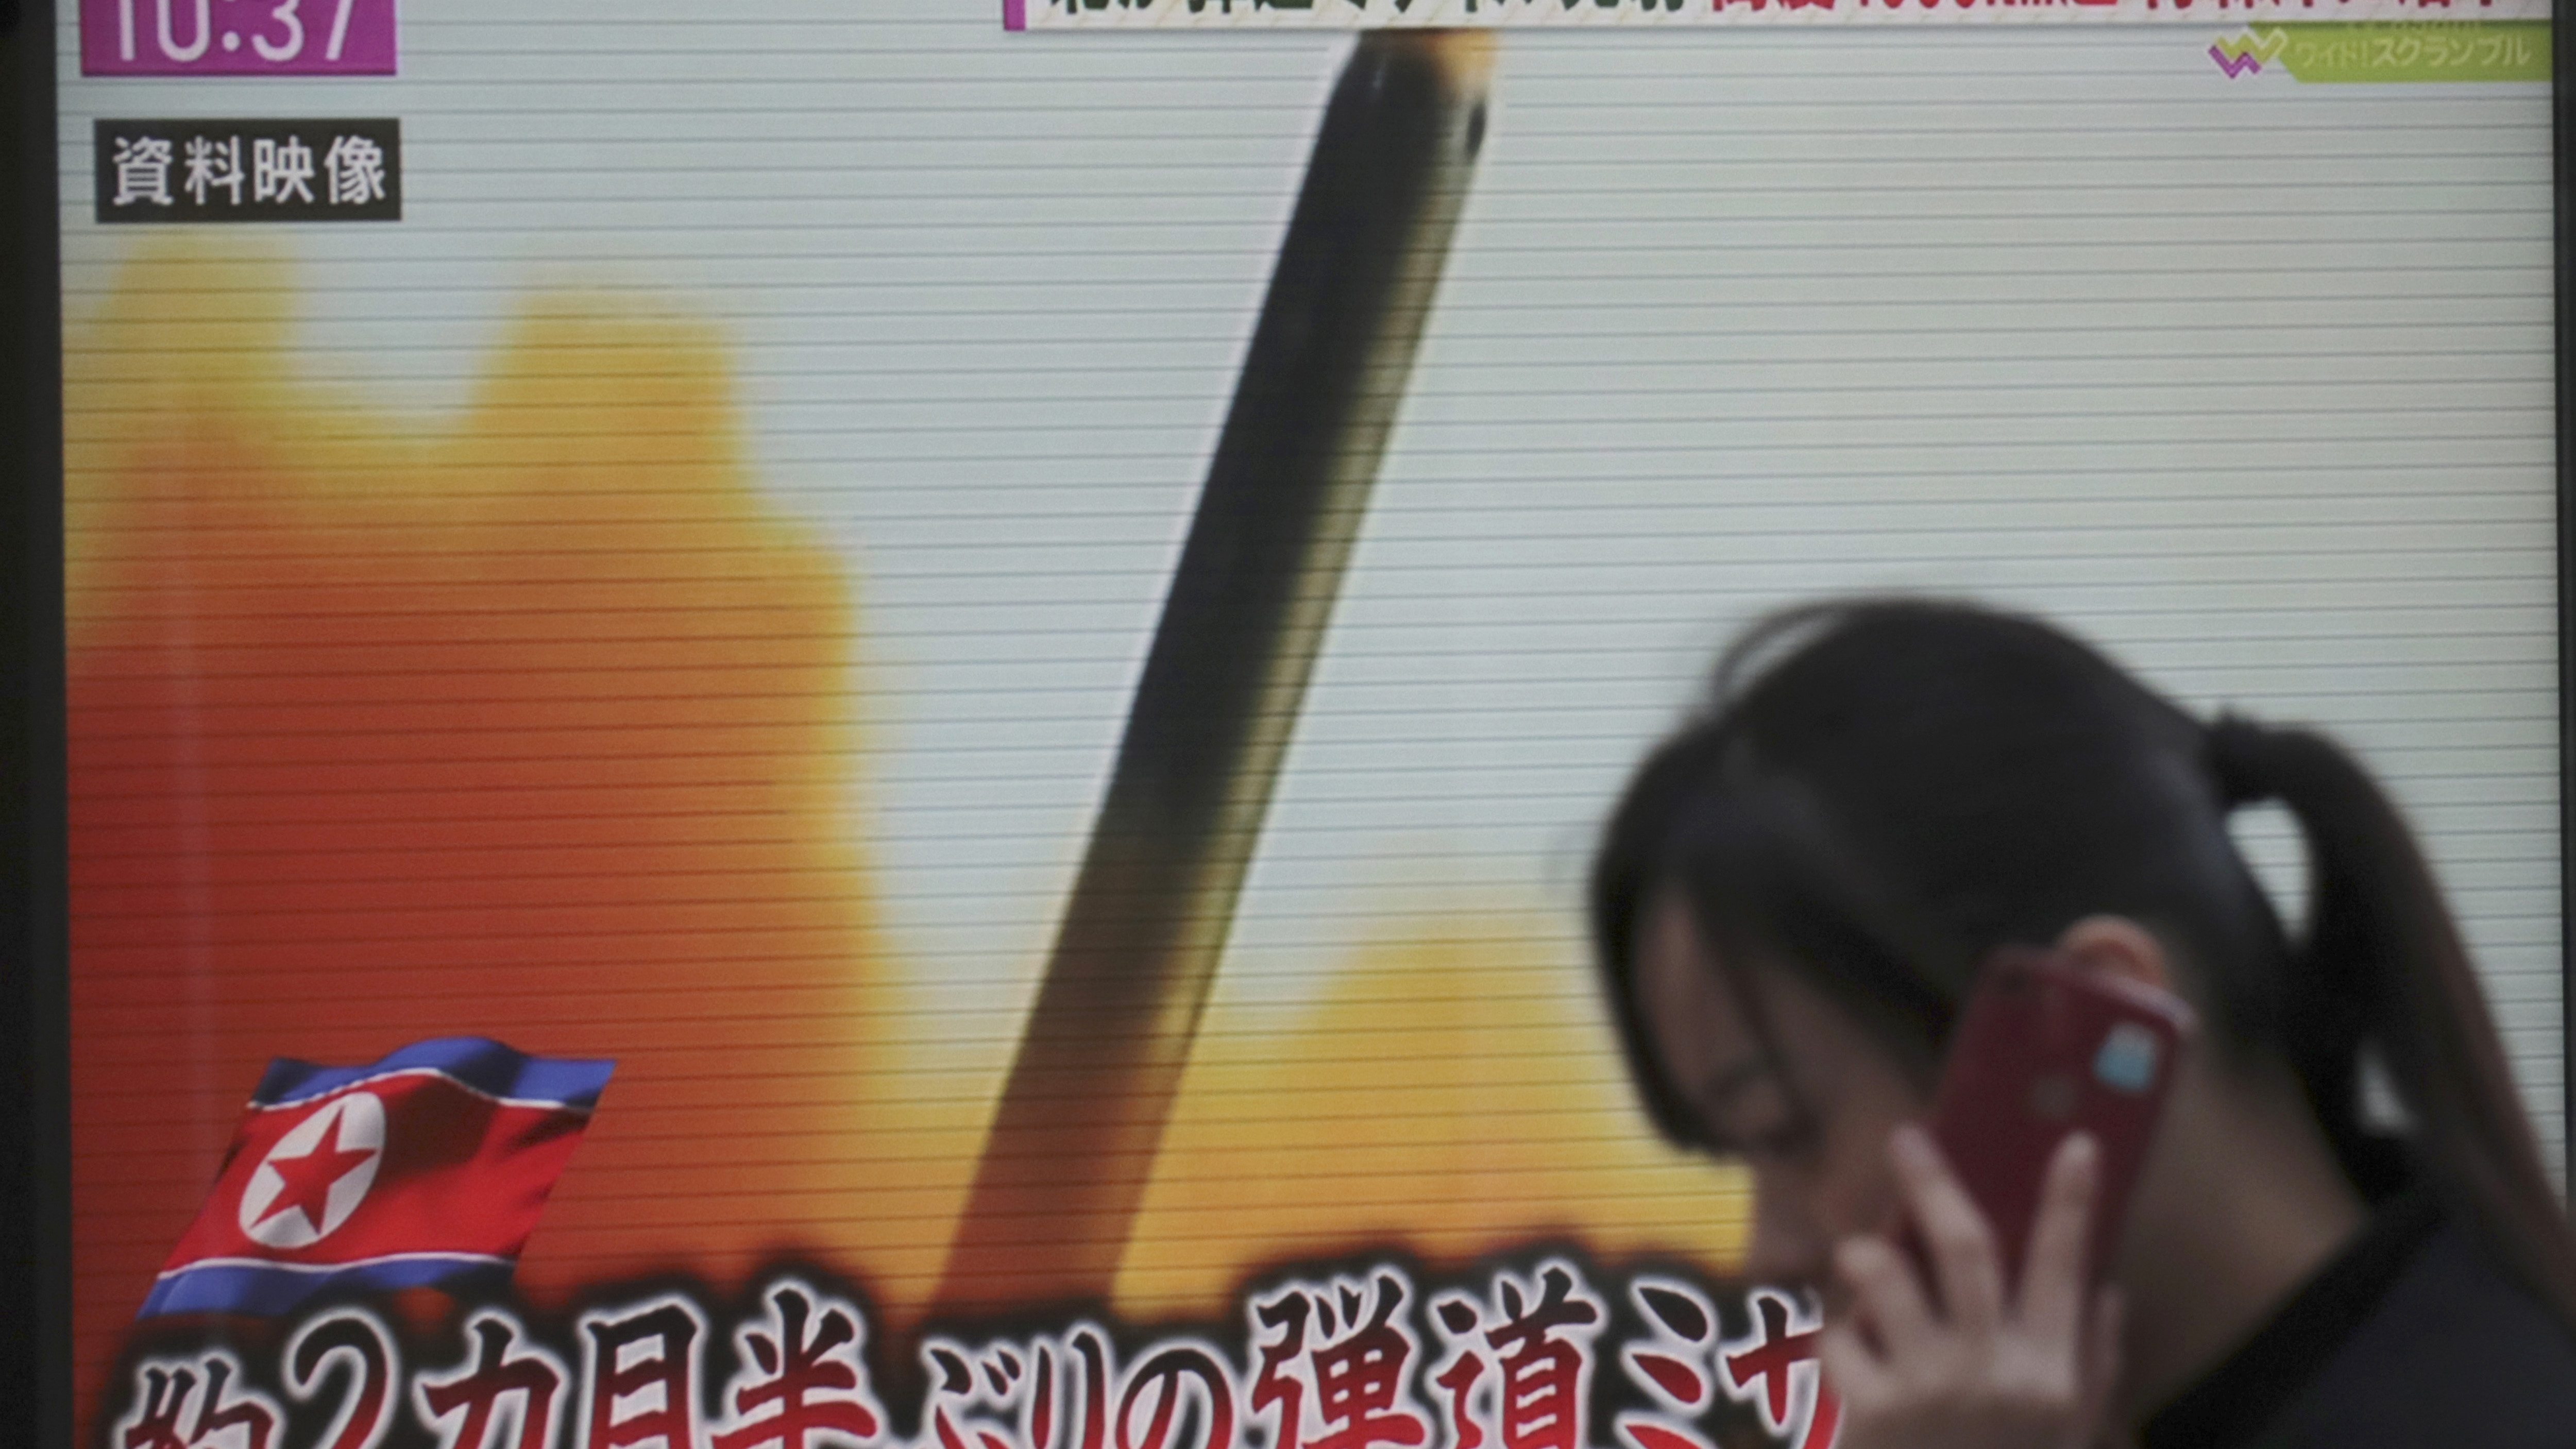 """A woman walks past a TV screen broadcasting news of North Korea's missile launch, in Tokyo, Wednesday, Nov. 29, 2017. After 2 ½ months of relative peace, North Korea launched its most powerful weapon yet early Wednesday, a presumed intercontinental ballistic missile that could put Washington and the entire eastern U.S. seaboard within range. The letters at bottom read """" Ballistic missile after 2 ½ months."""" (AP Photo/Shizuo Kambayashi)"""